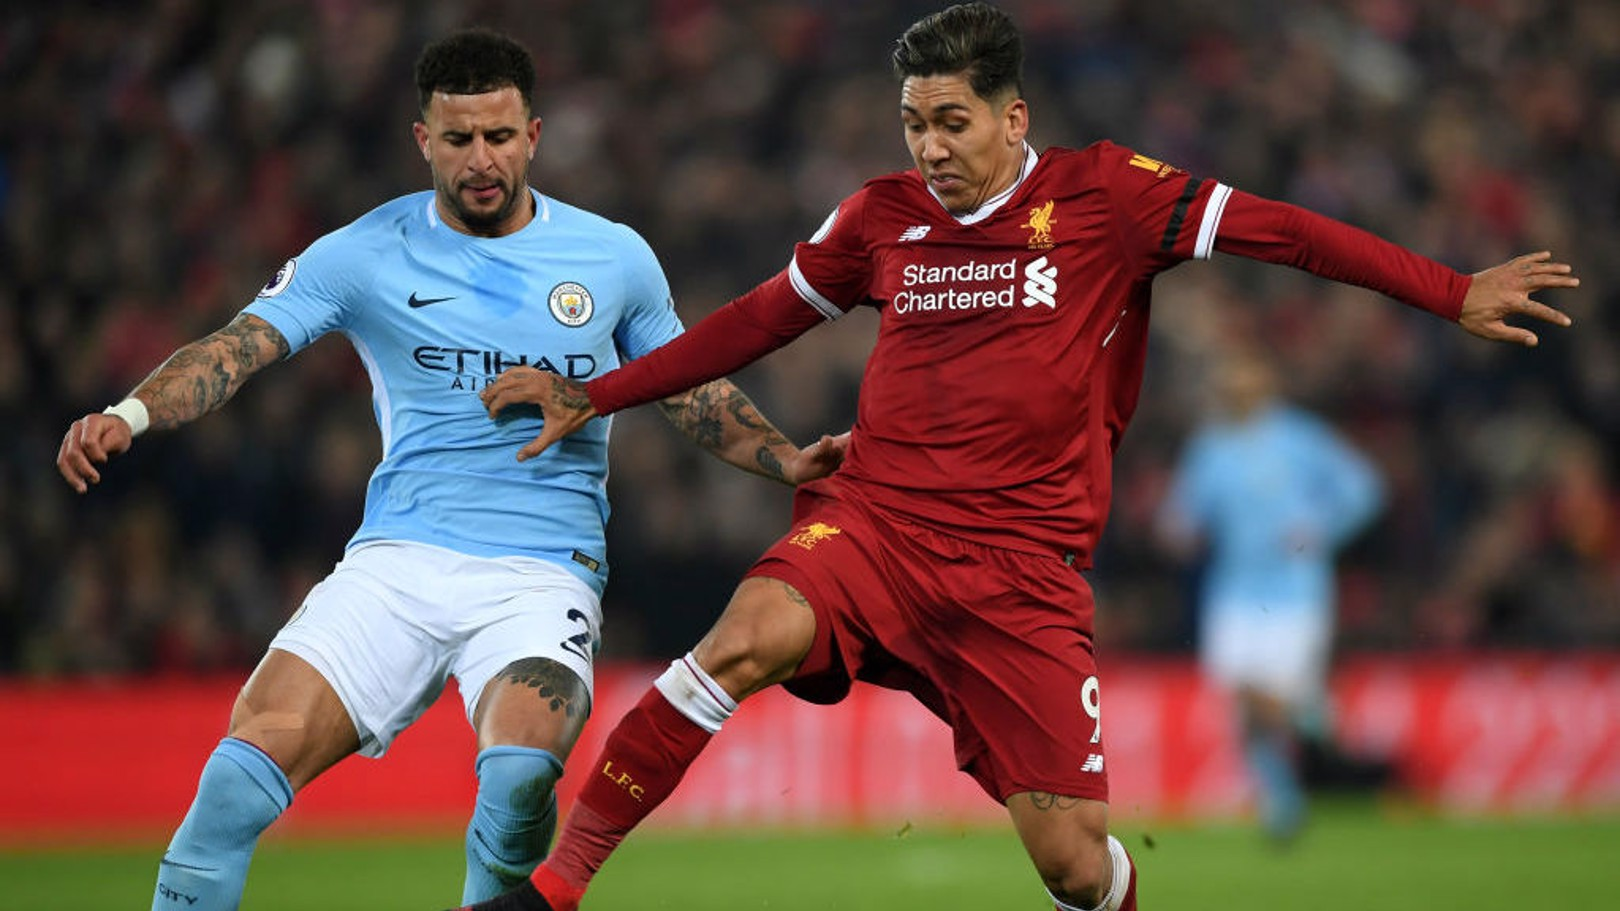 Liverpool vs. City: Duelos-chave